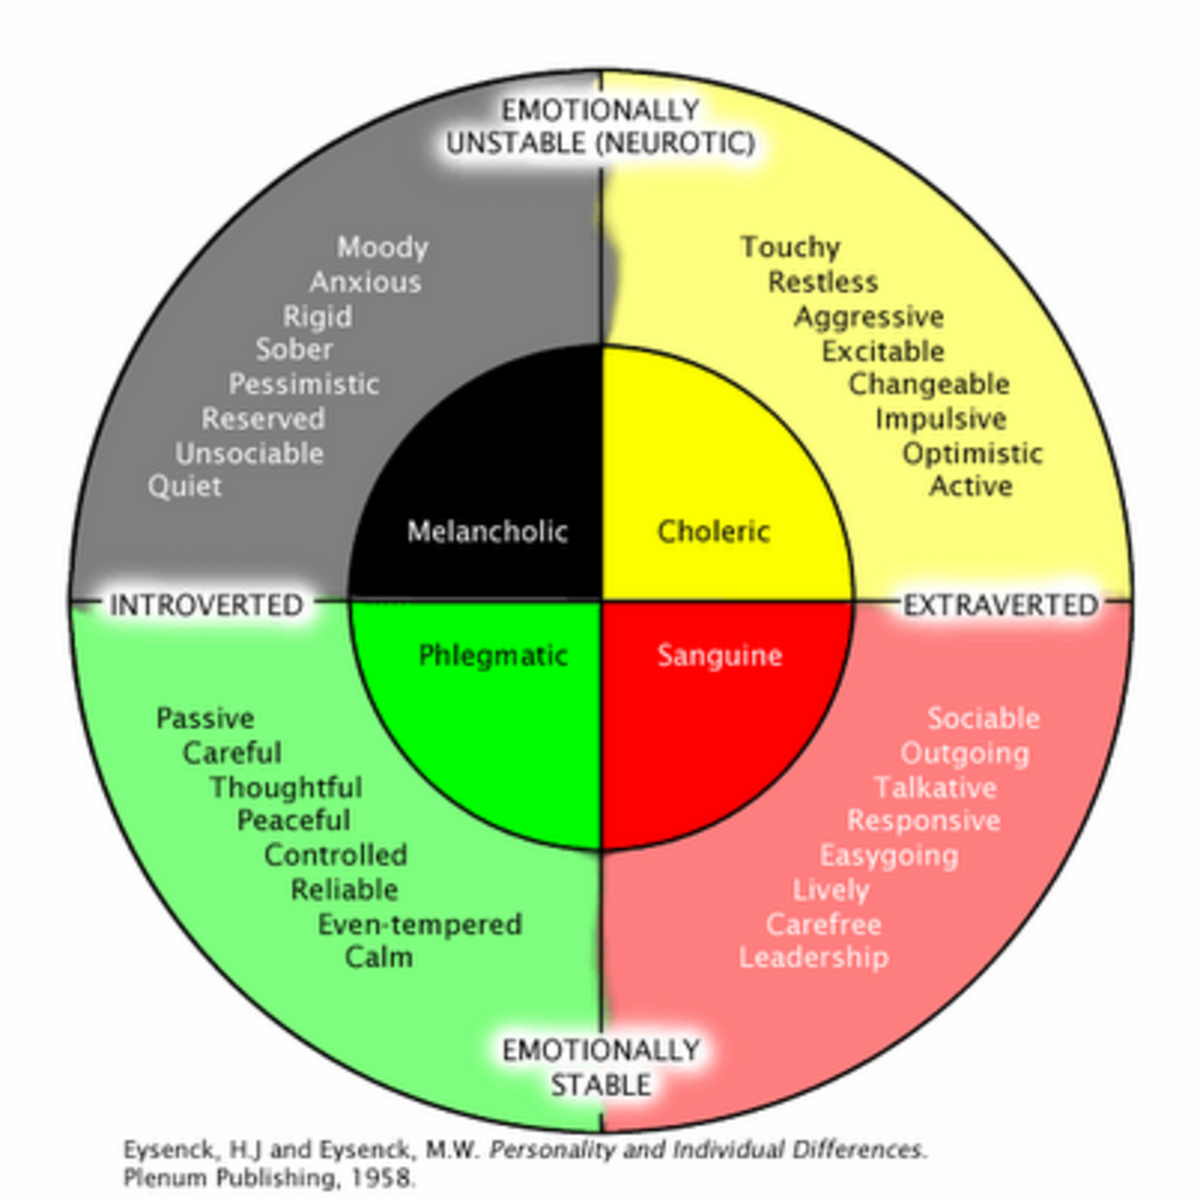 Psychoticism, Extraversion, Neuroticism